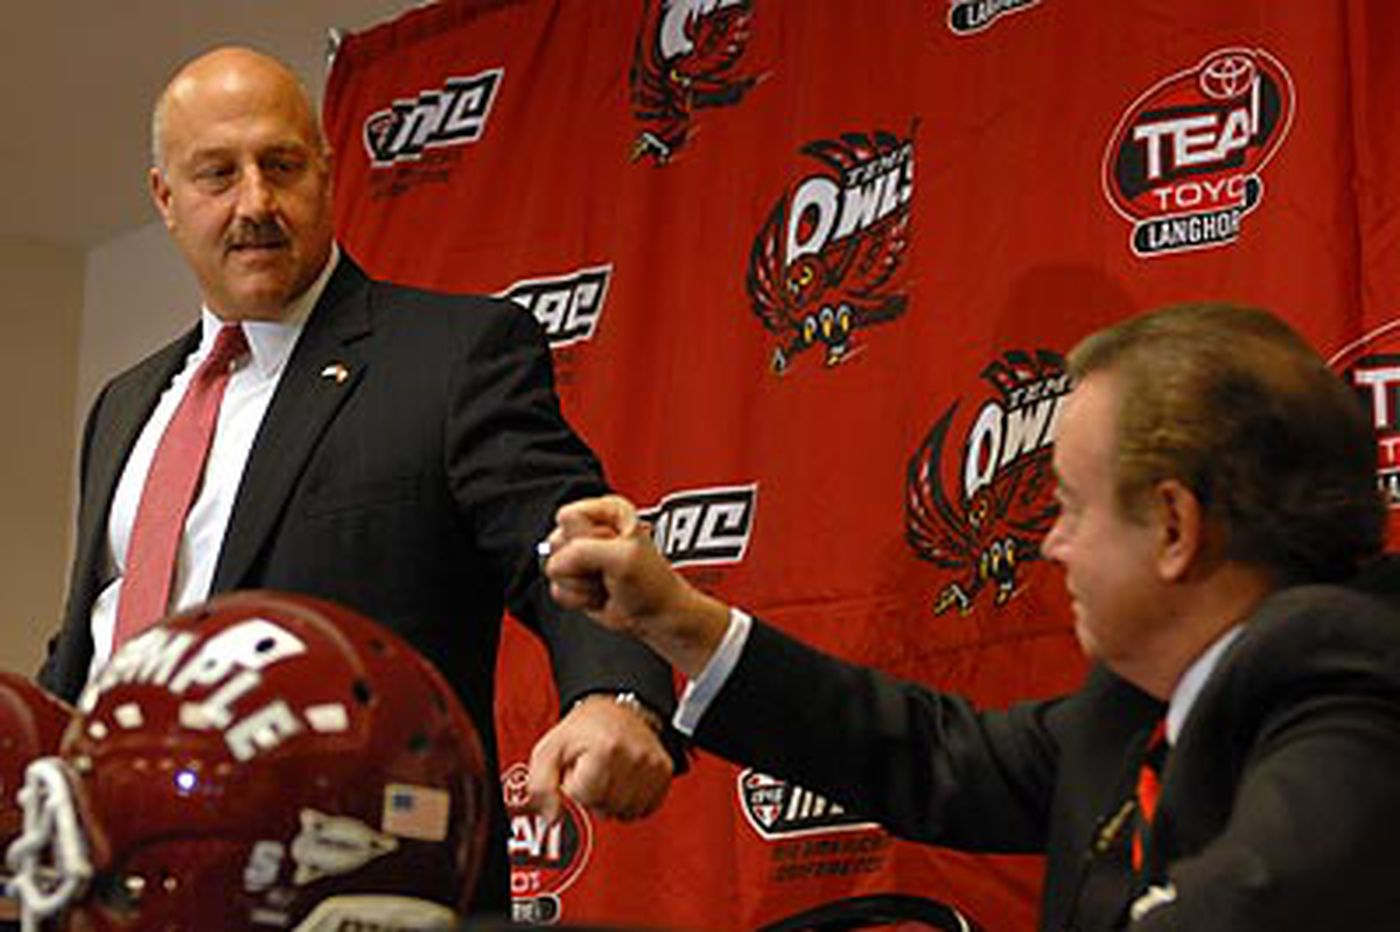 For Temple, a cordial parting, and optimism with a new coach